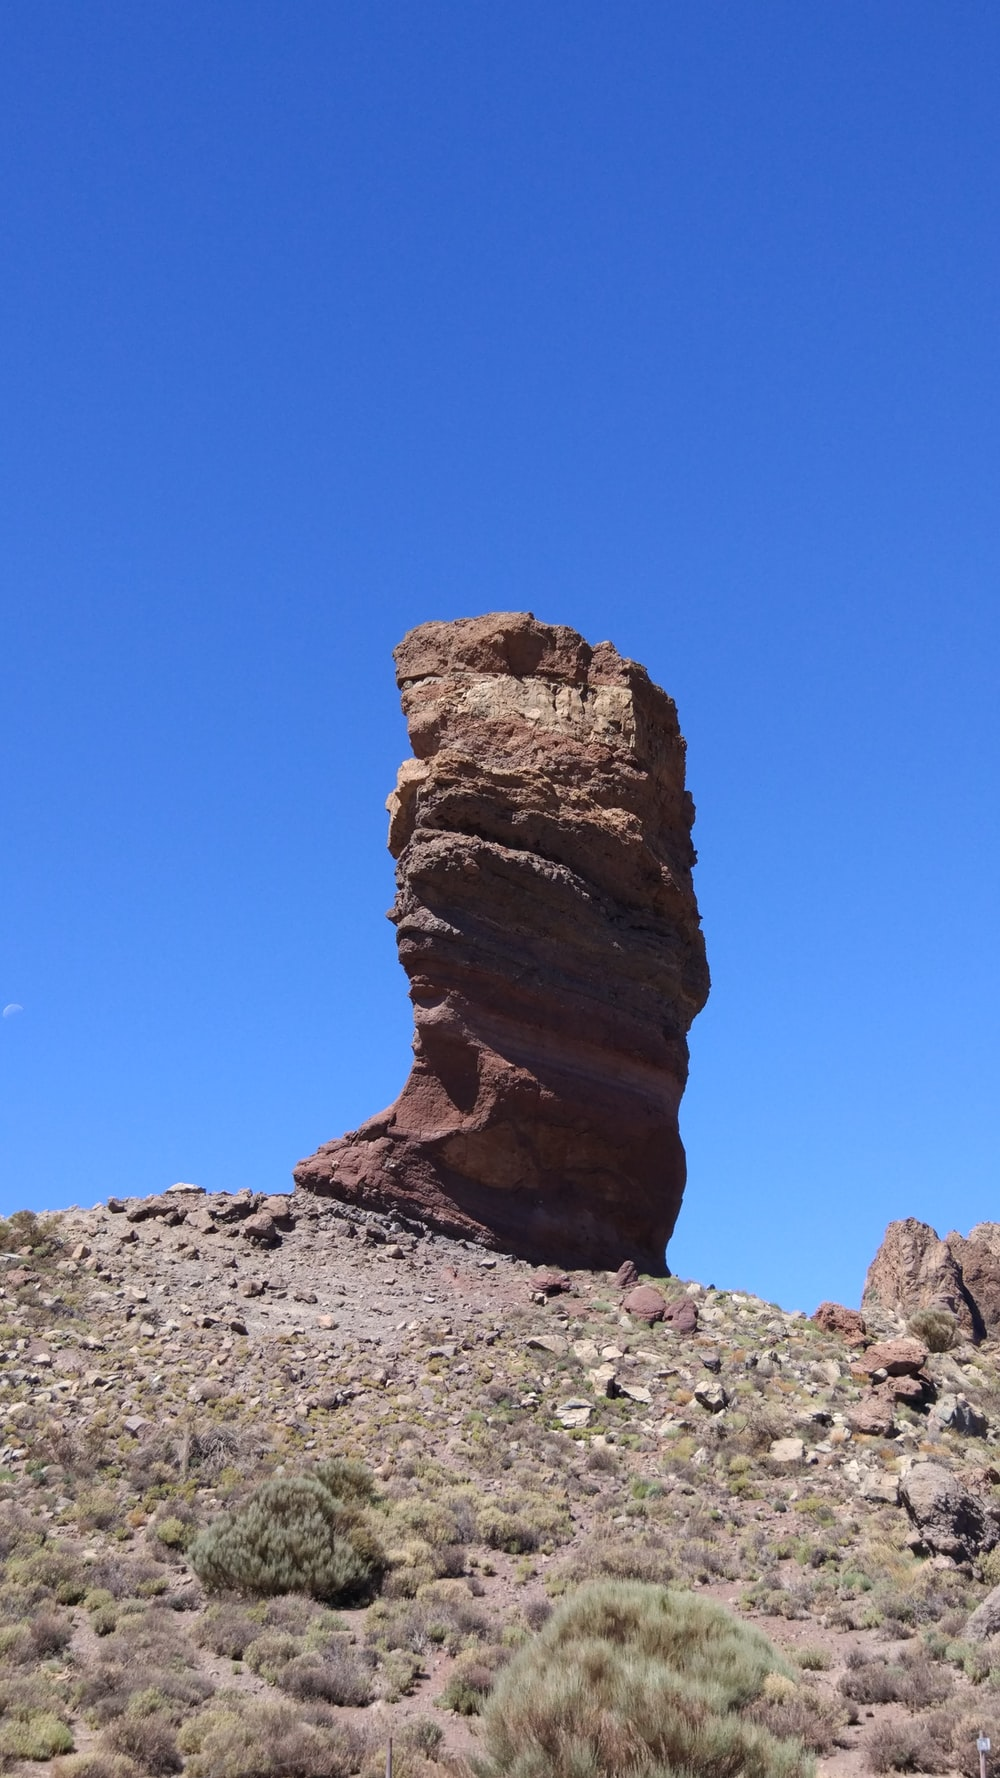 brown rock formation on hill